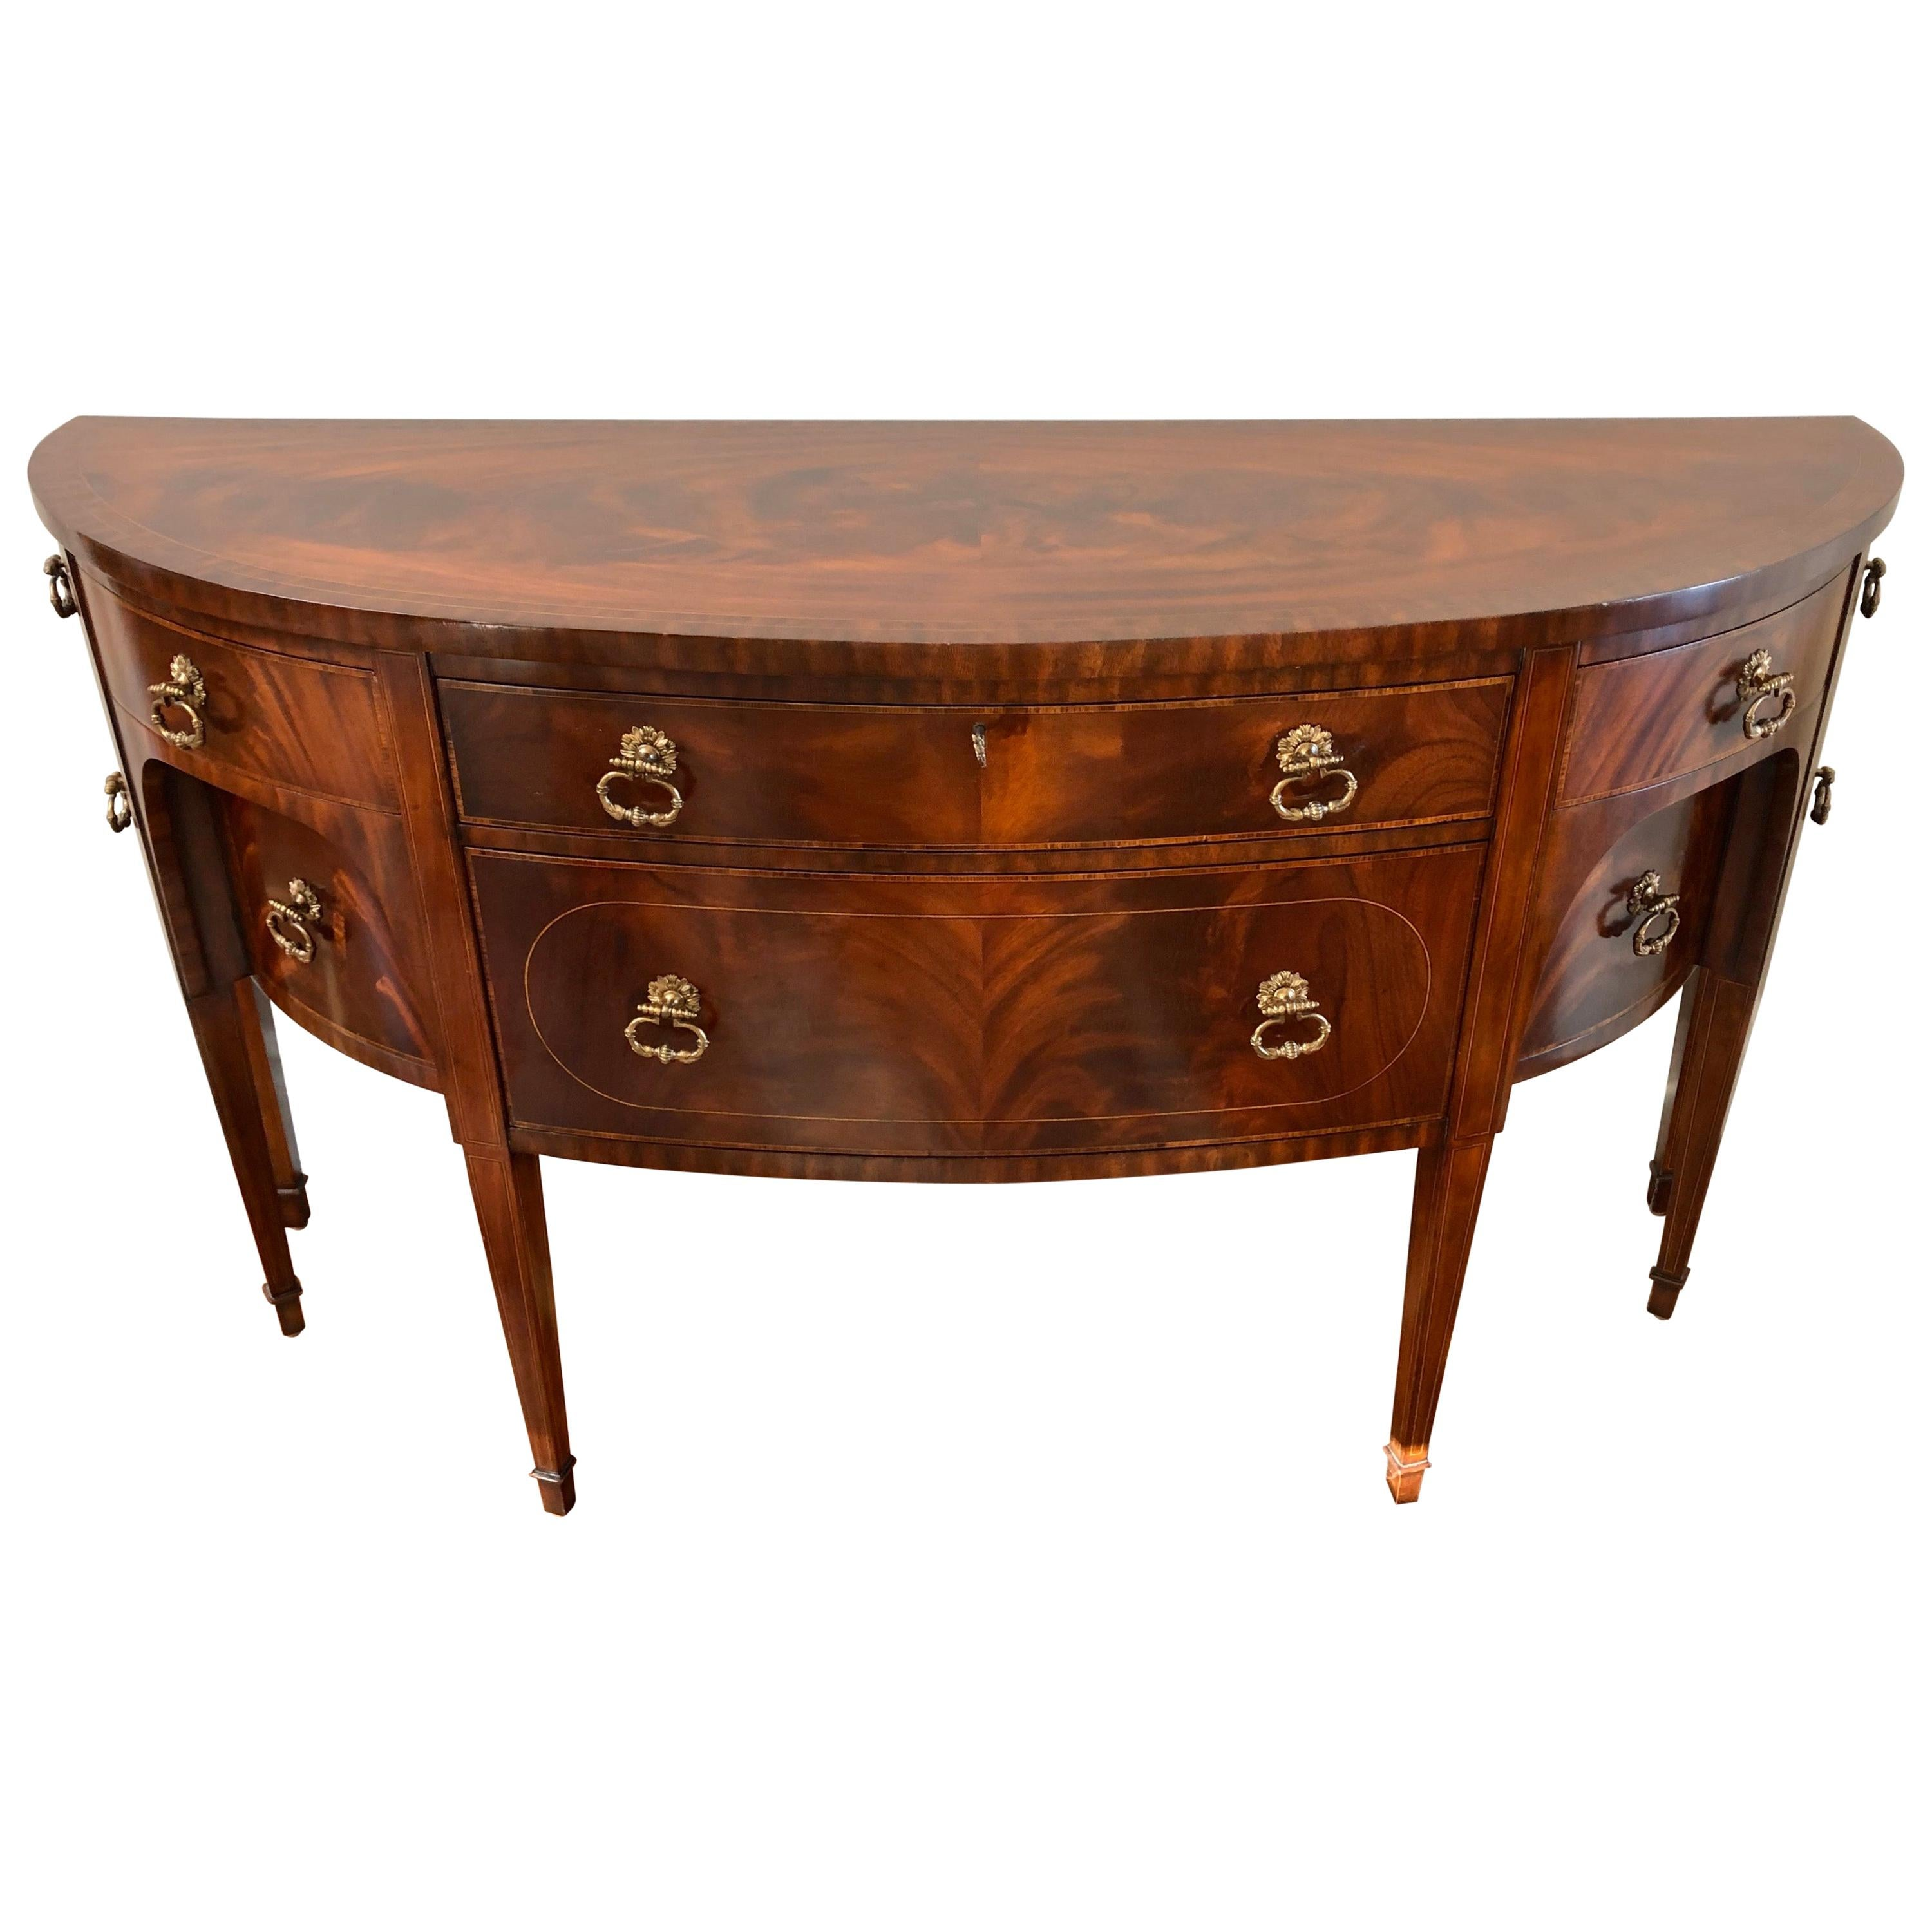 Maitland Smith Flame Mahogany Curved Front Sideboard Credenza Buffet Server